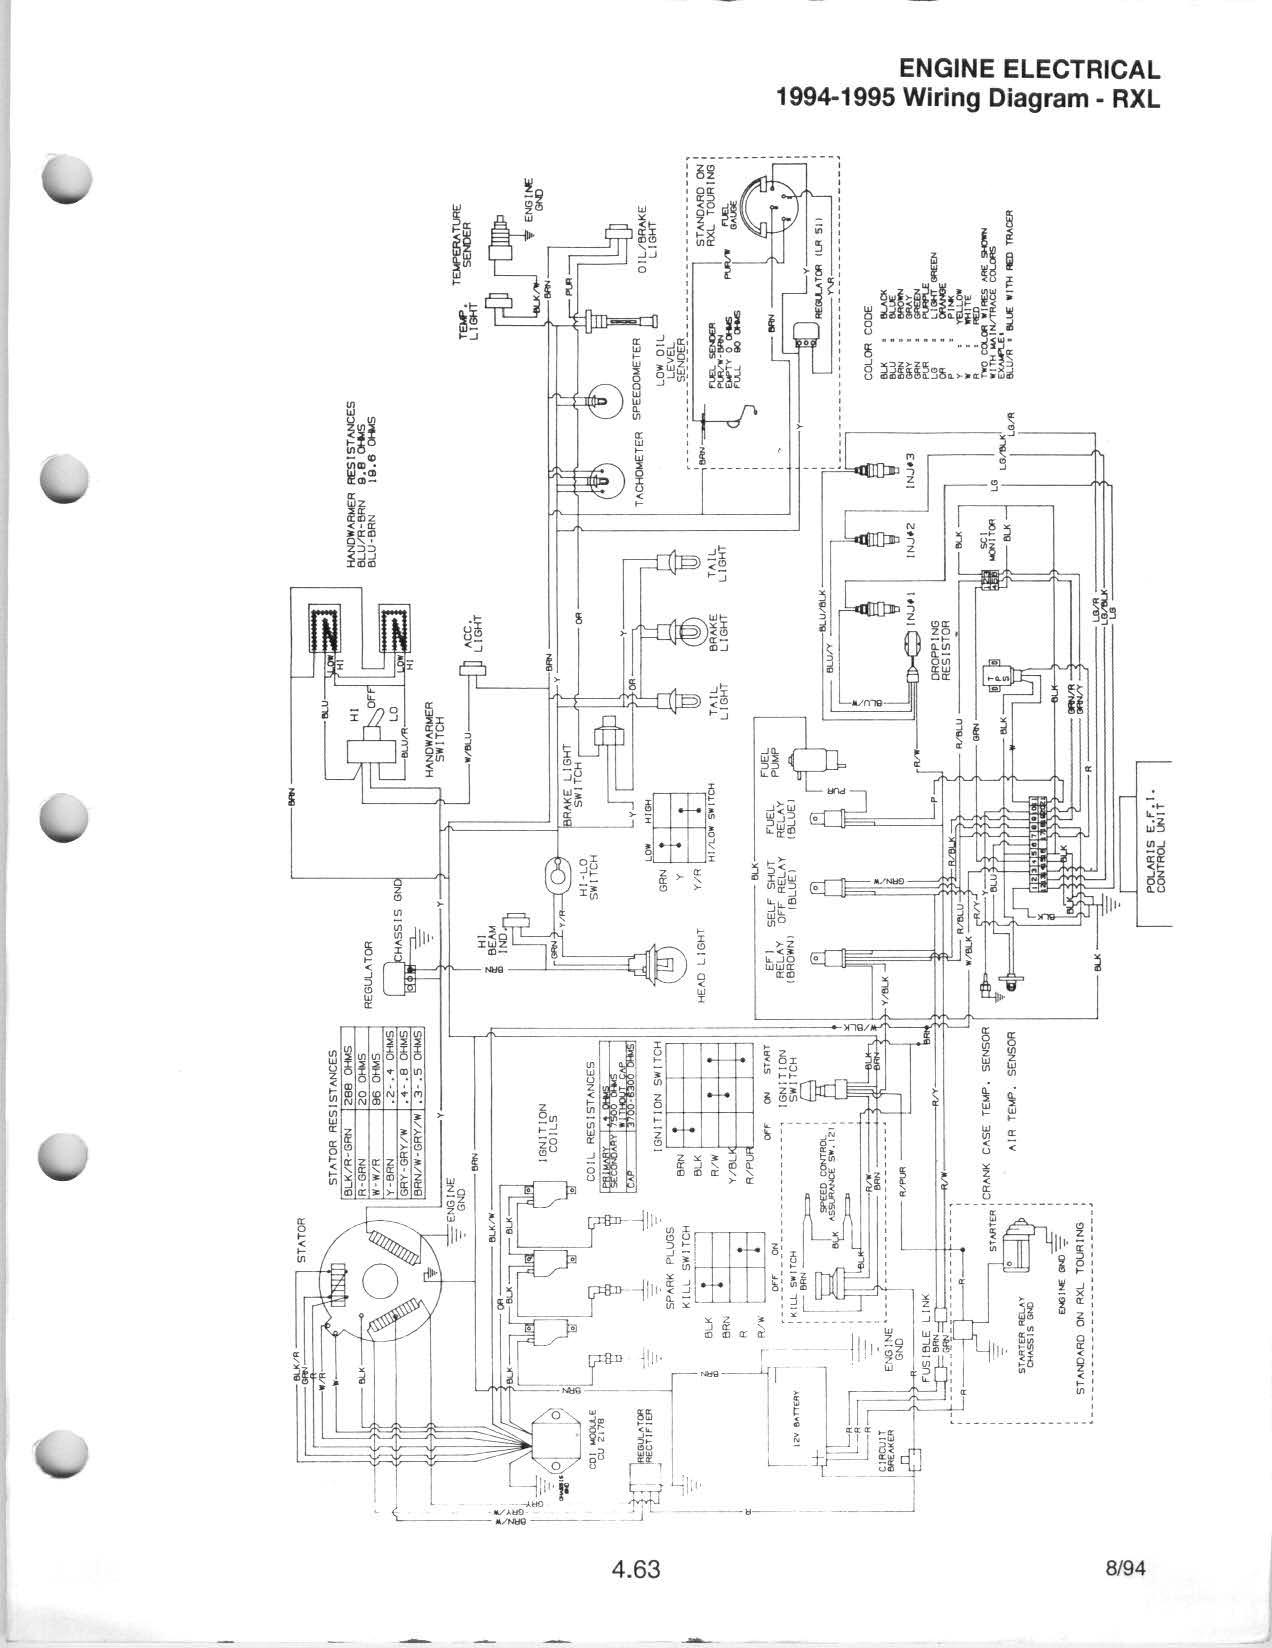 1991 polaris wiring diagram